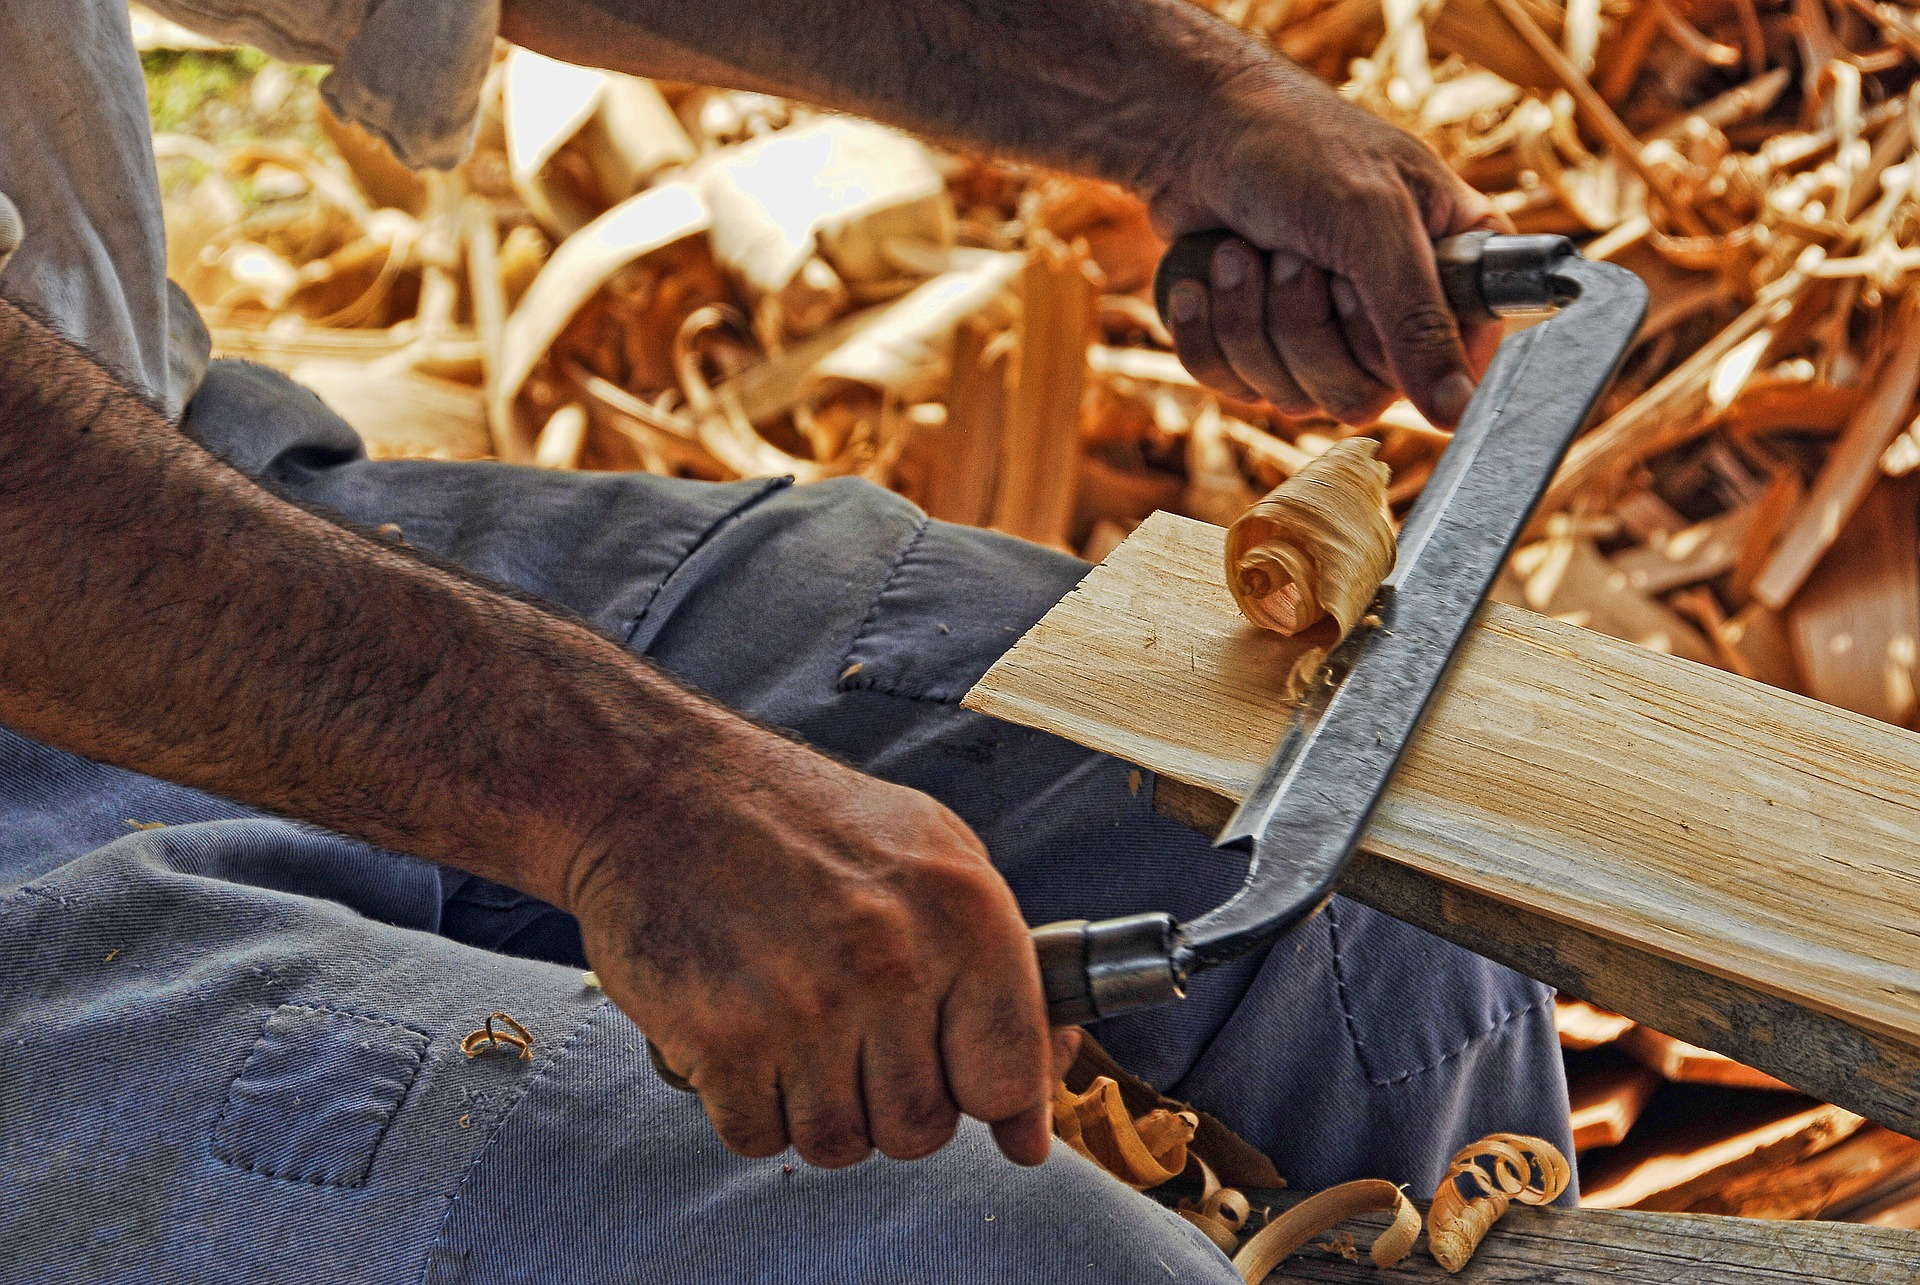 Is there still a use for carpenters and joiners or is it a dying art?